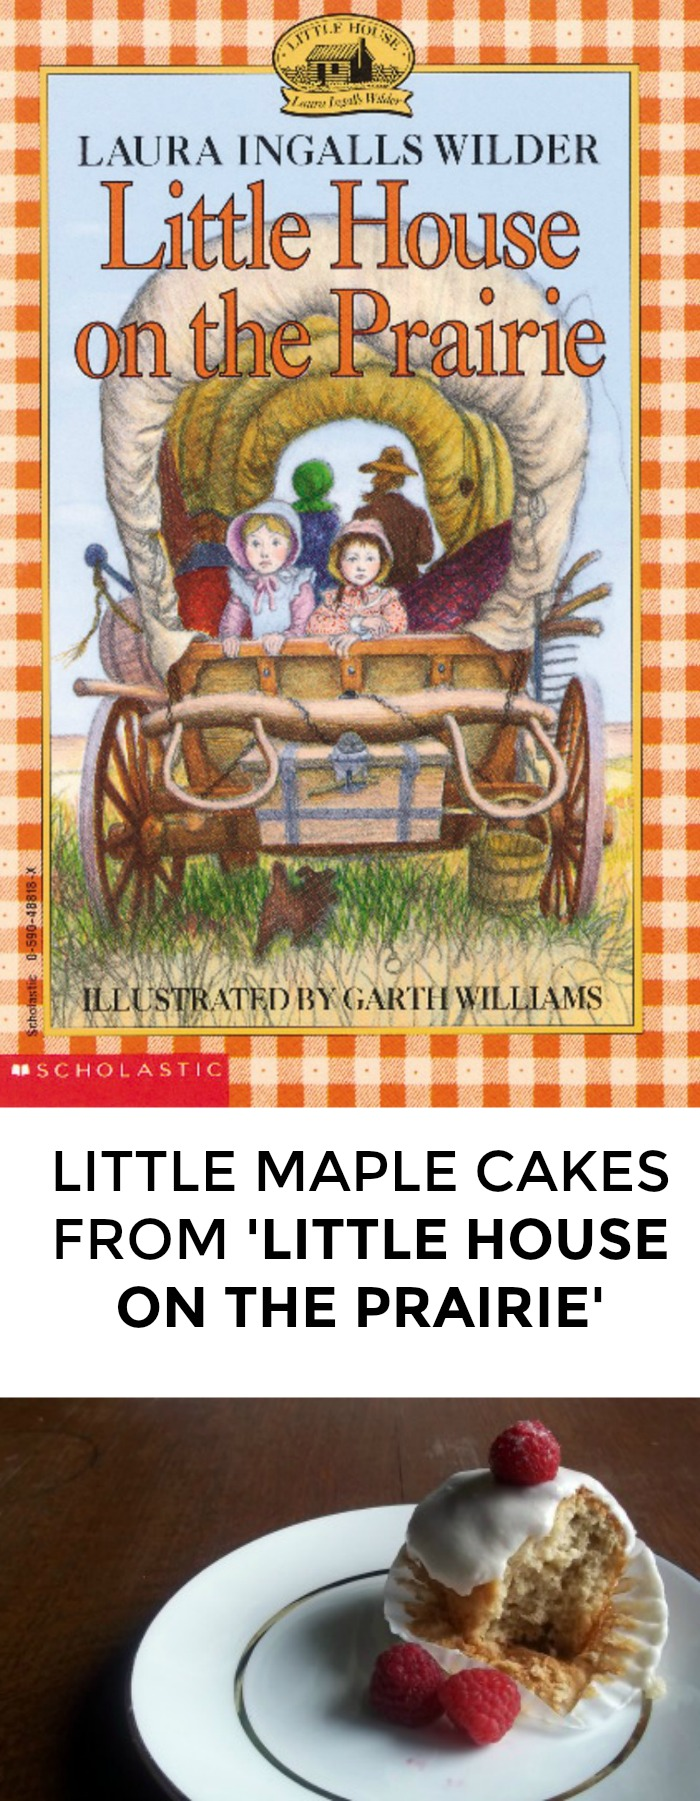 Looking for a recipe from Little House On The Prairie? Click through for an easy, delicious recipe for little maple cakes!